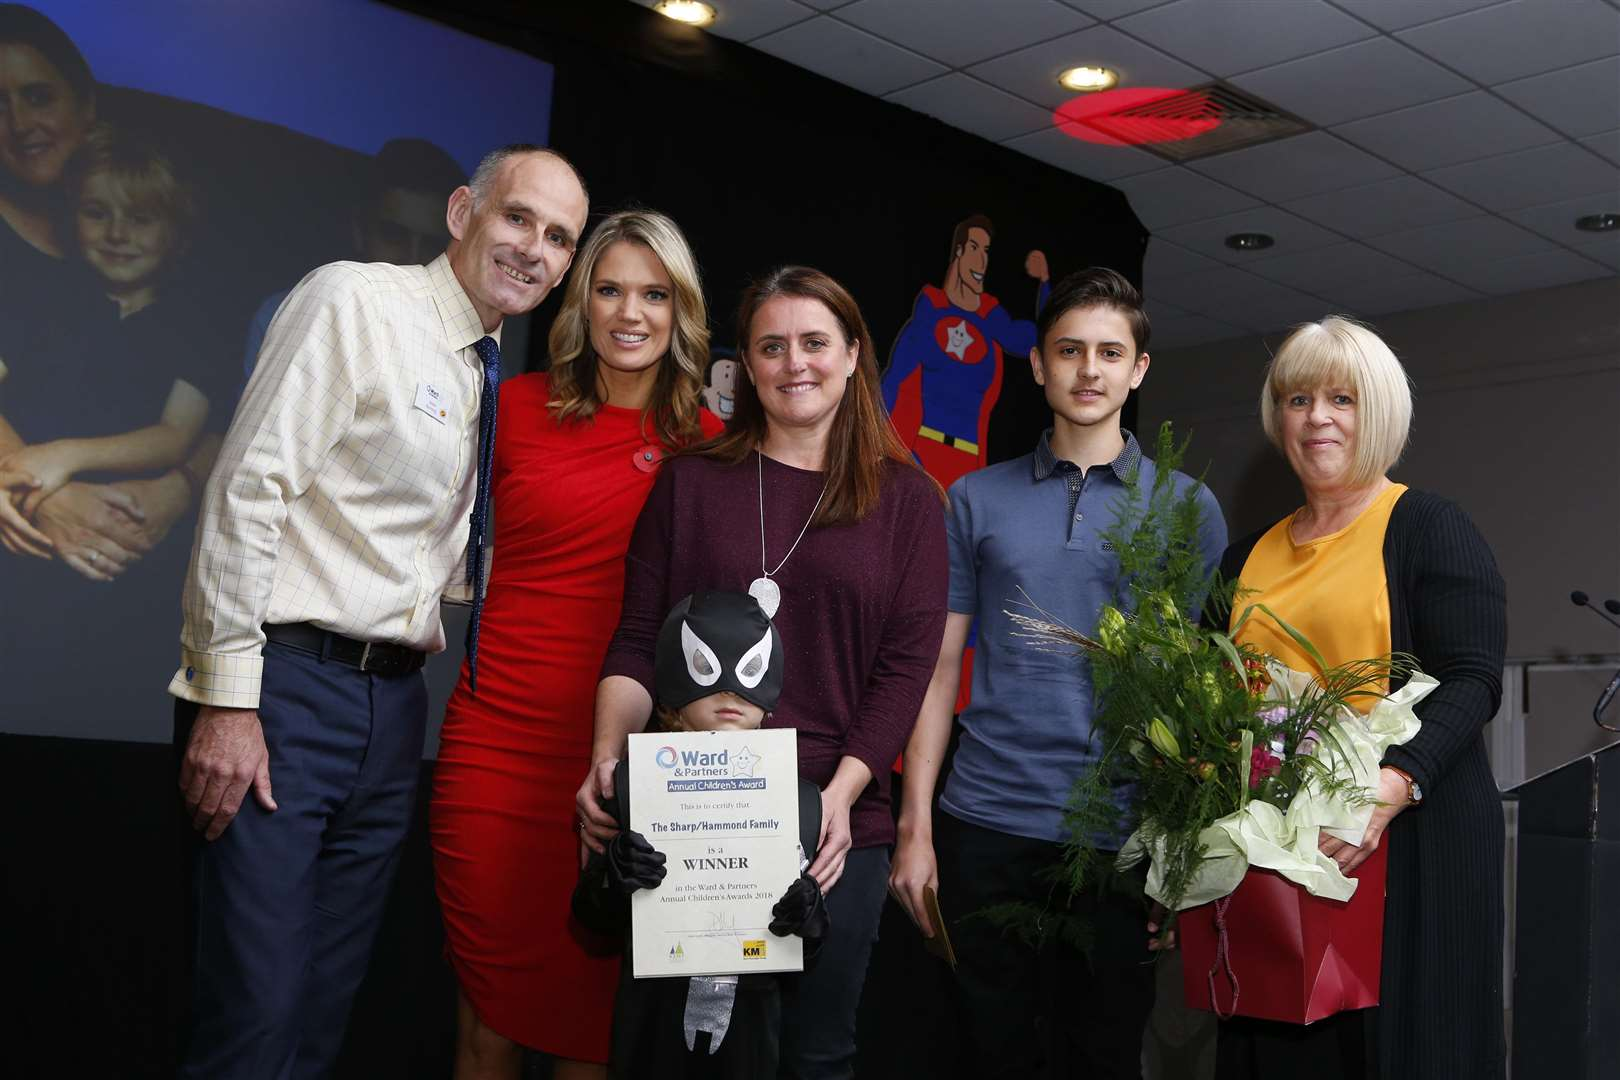 The Sharp/Hammond family won Courageous family at this year's awards.Picture: Andy Jones